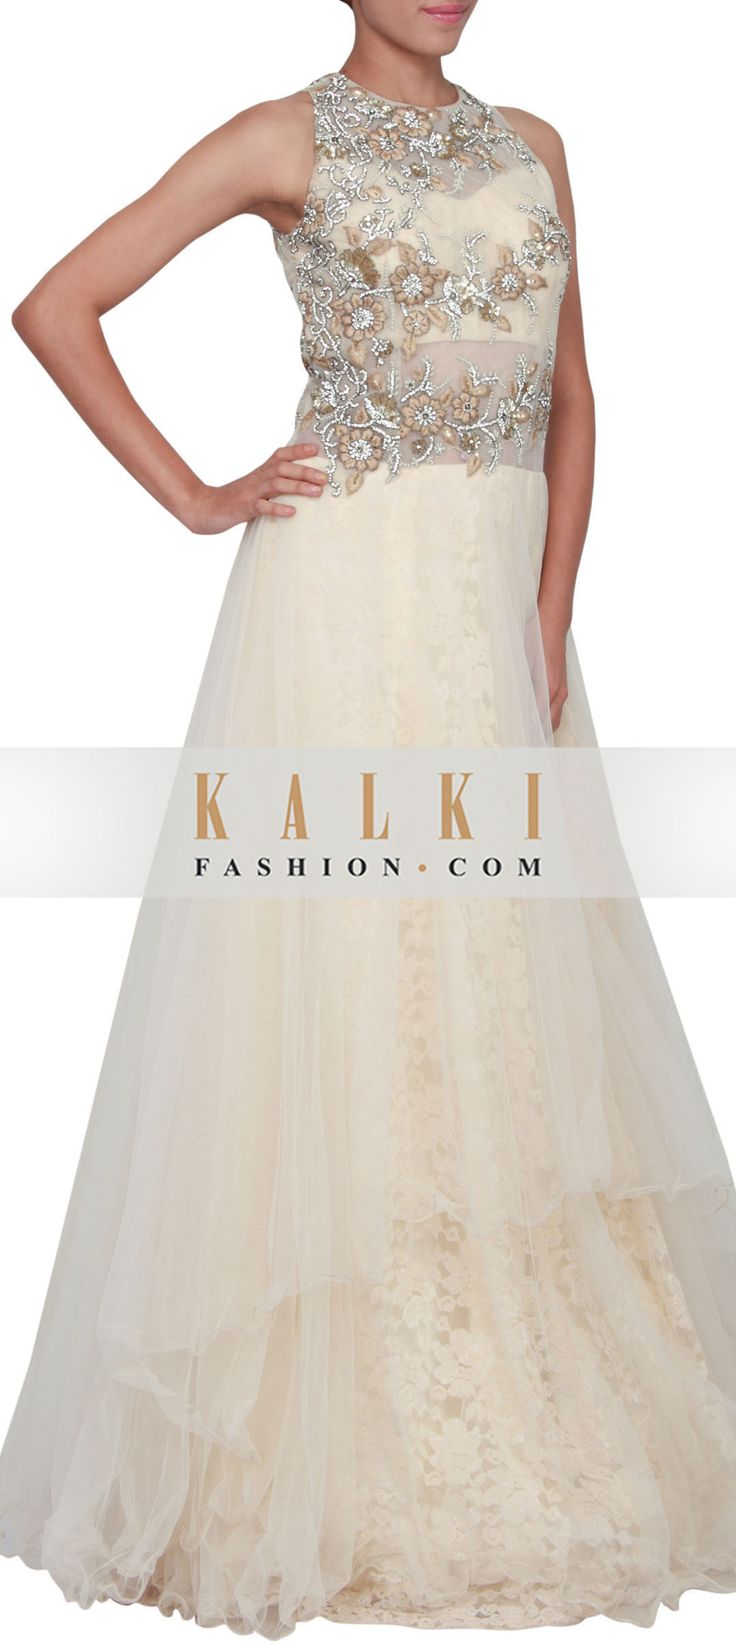 Buy Online from the link below. We ship worldwide (Free Shipping over US$100) http://www.kalkifashion.com/beige-gown-featured-in-net-embellished-in-resham-pearl-and-kundan-only-on-kalki.html